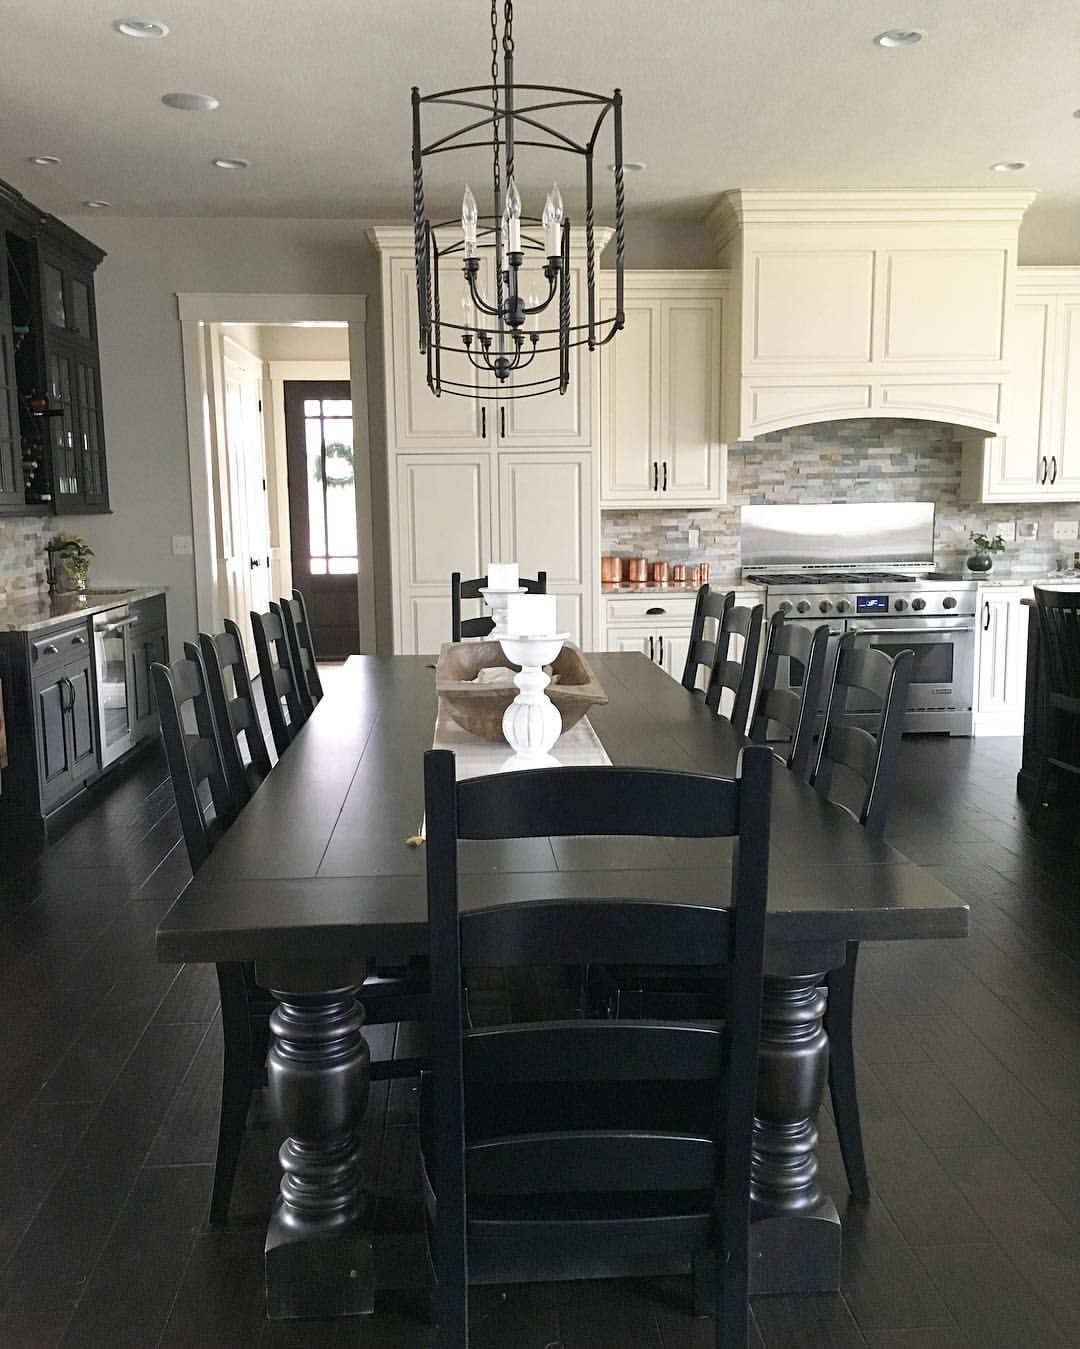 Long kitchen tables  Black and white modern farmhouse kitchen with long dining table